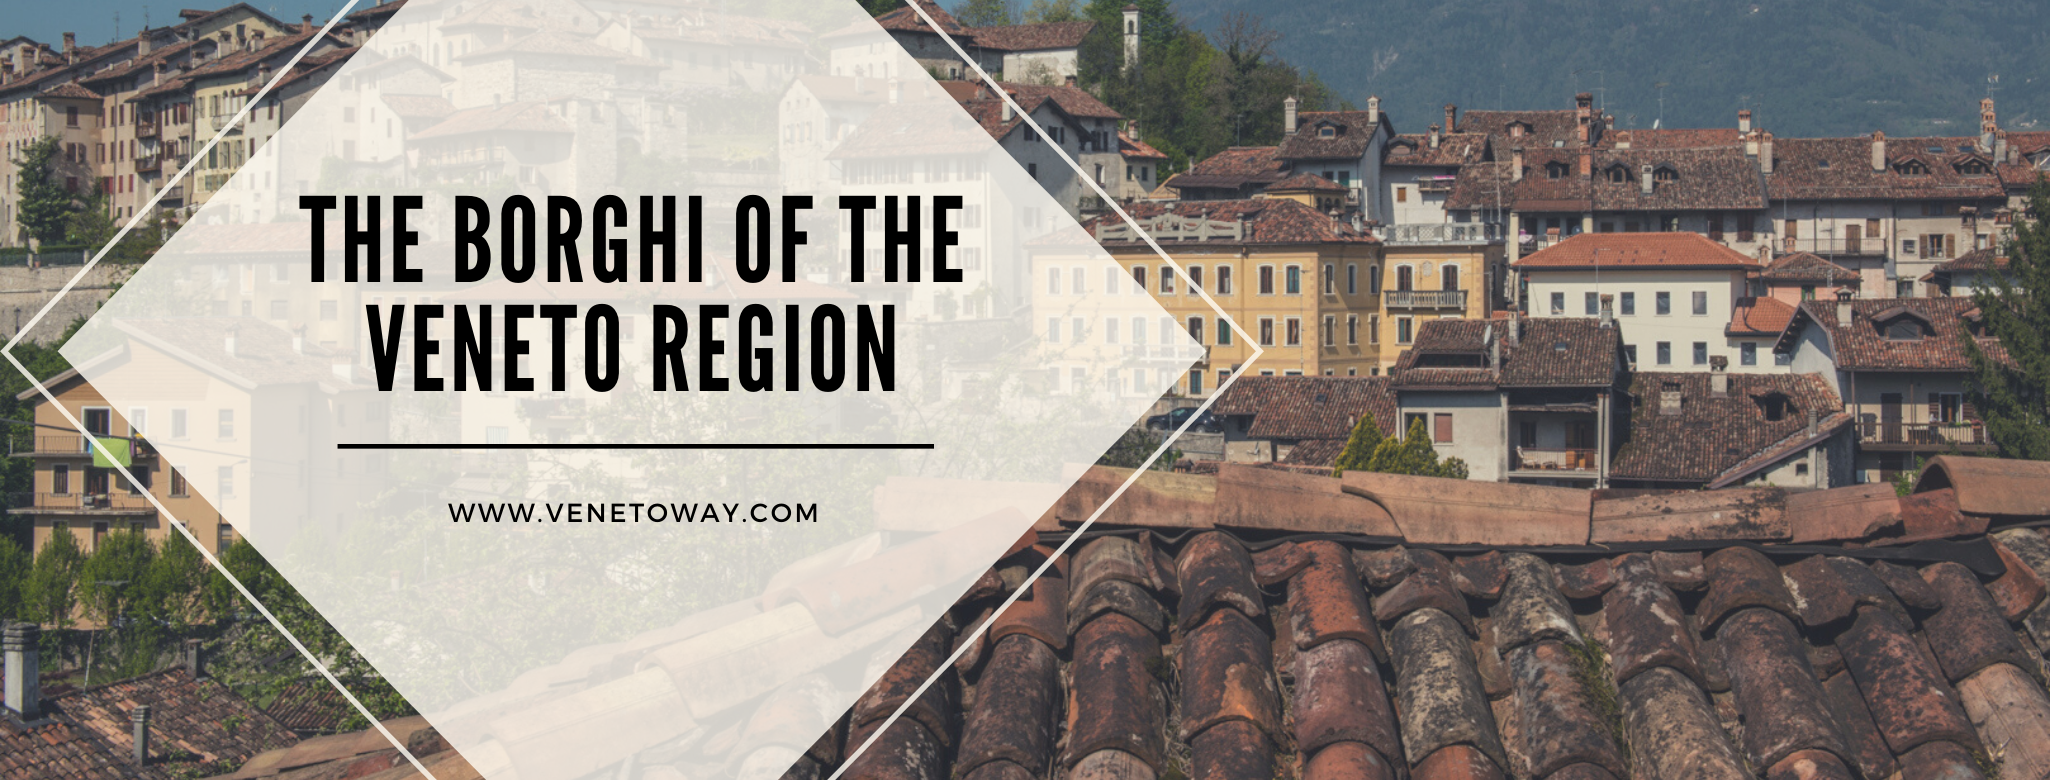 The Borghi of the Veneto region